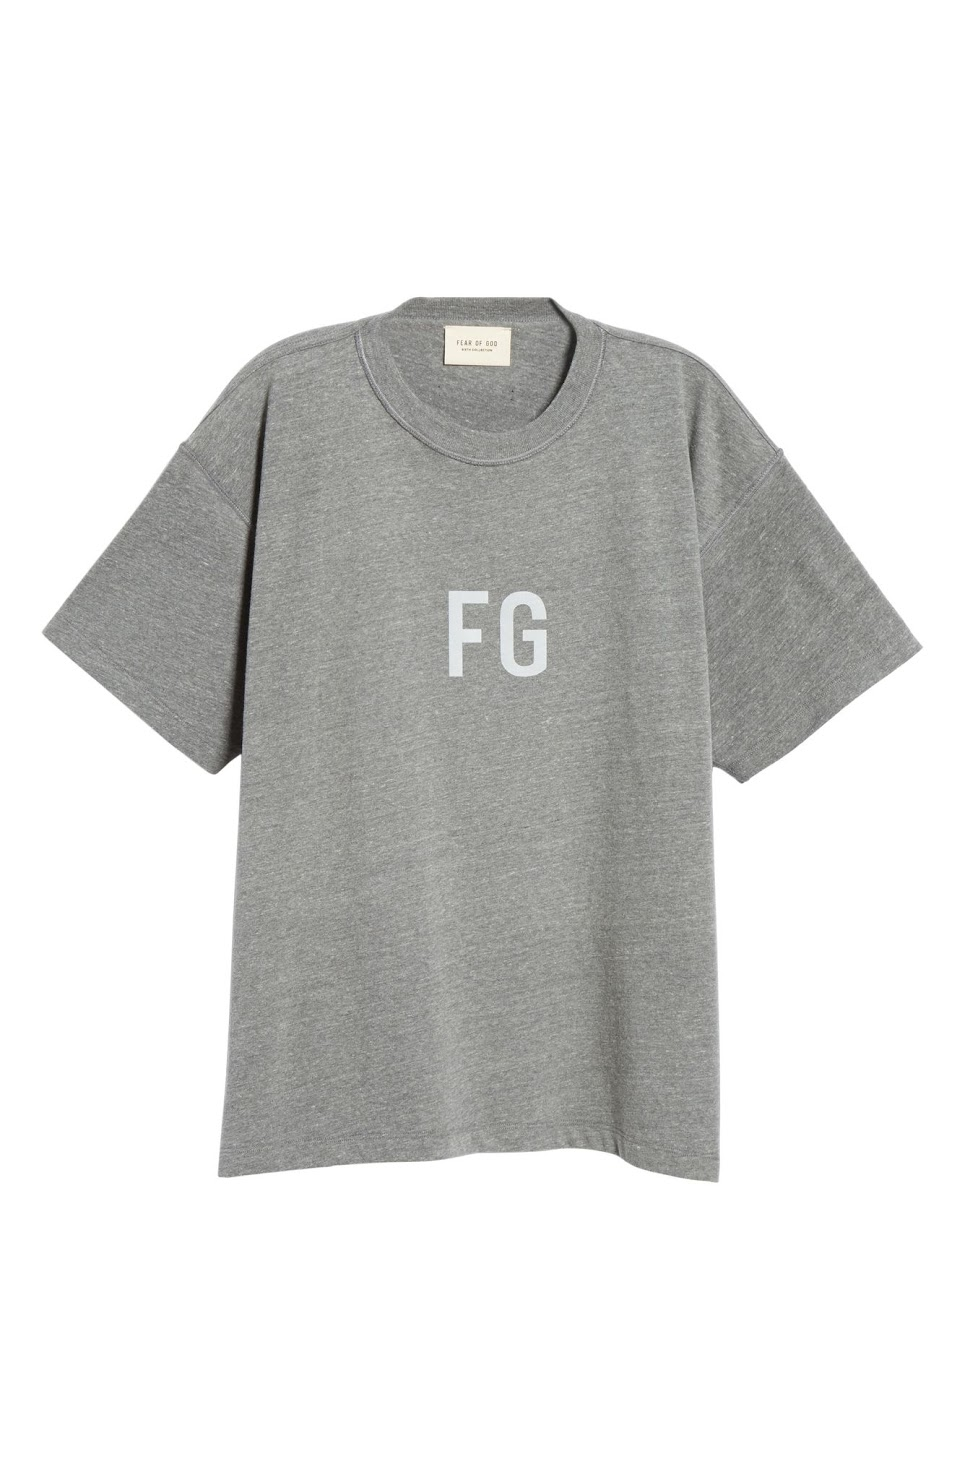 Fear of God_Short Sleeve FG Tee_$195.jpeg